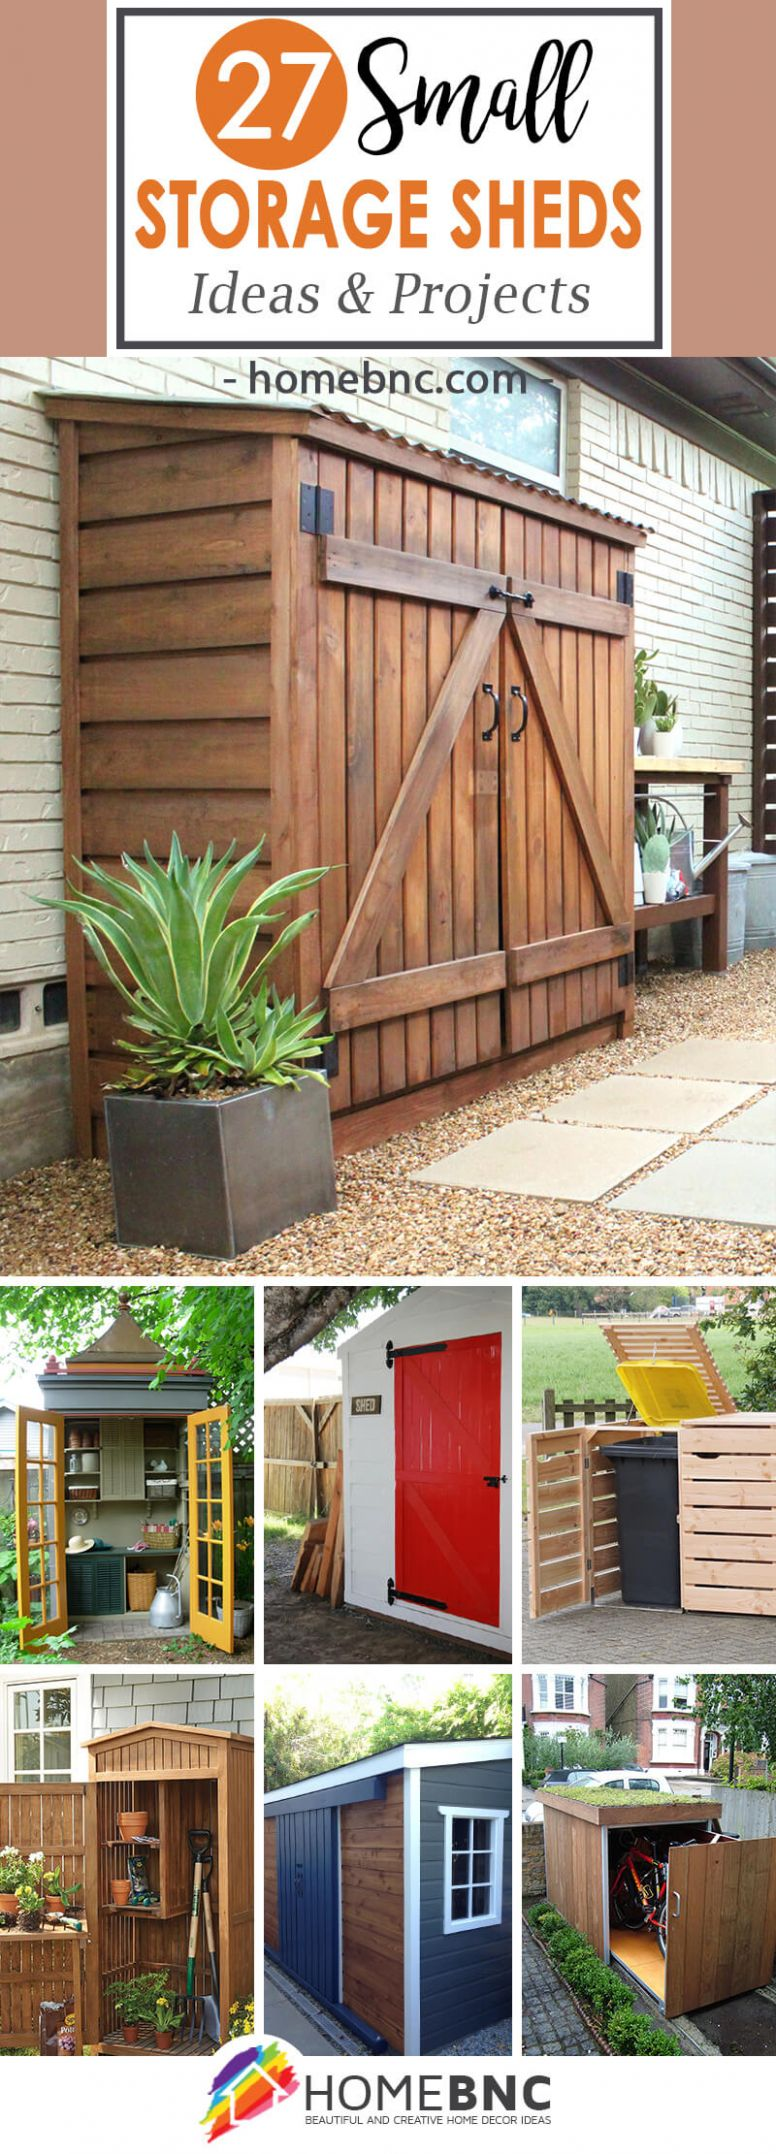 9 Best Small Storage Shed Projects (Ideas and Designs) for 9 - balcony shed ideas